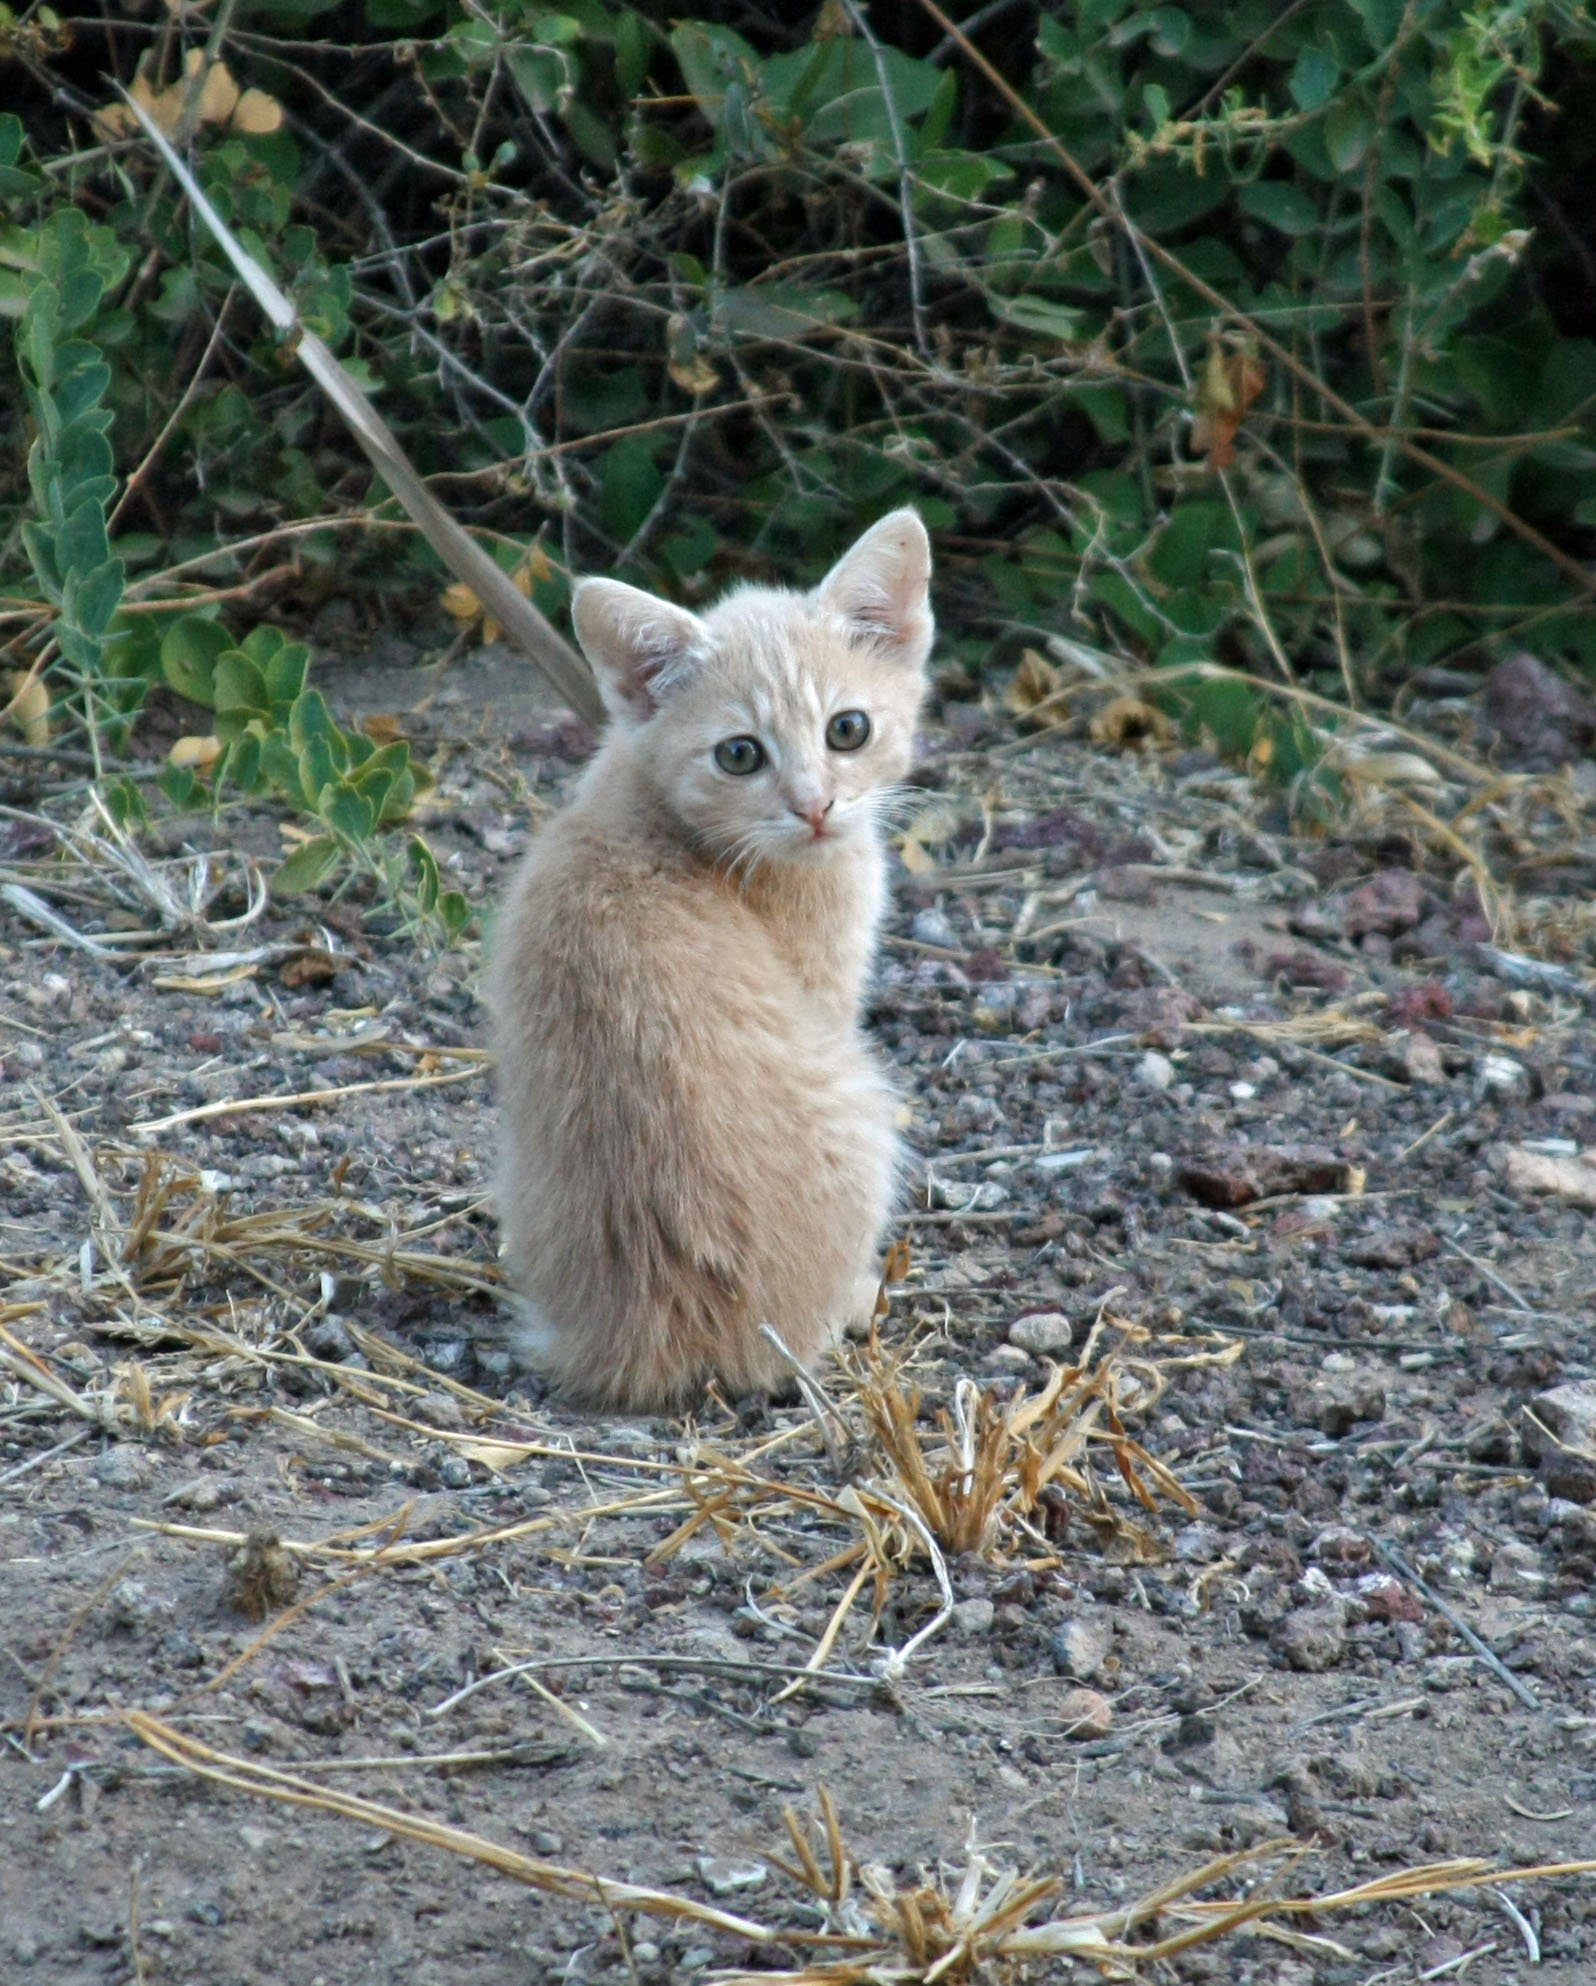 Picture of a small orange kitten in dirt near grass.